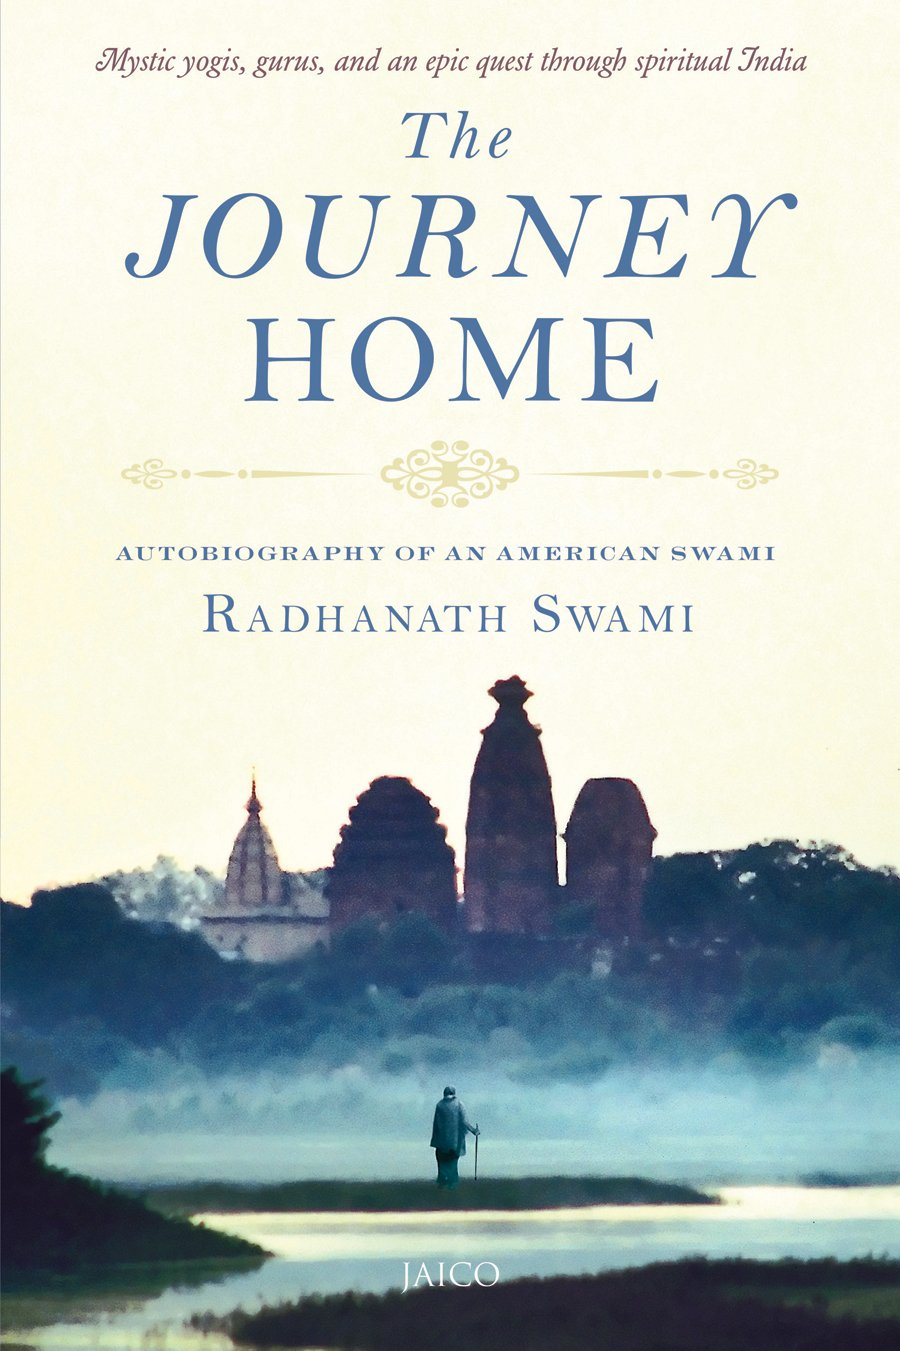 Buy The Journey Home Book Online at Low Prices in India | The ...